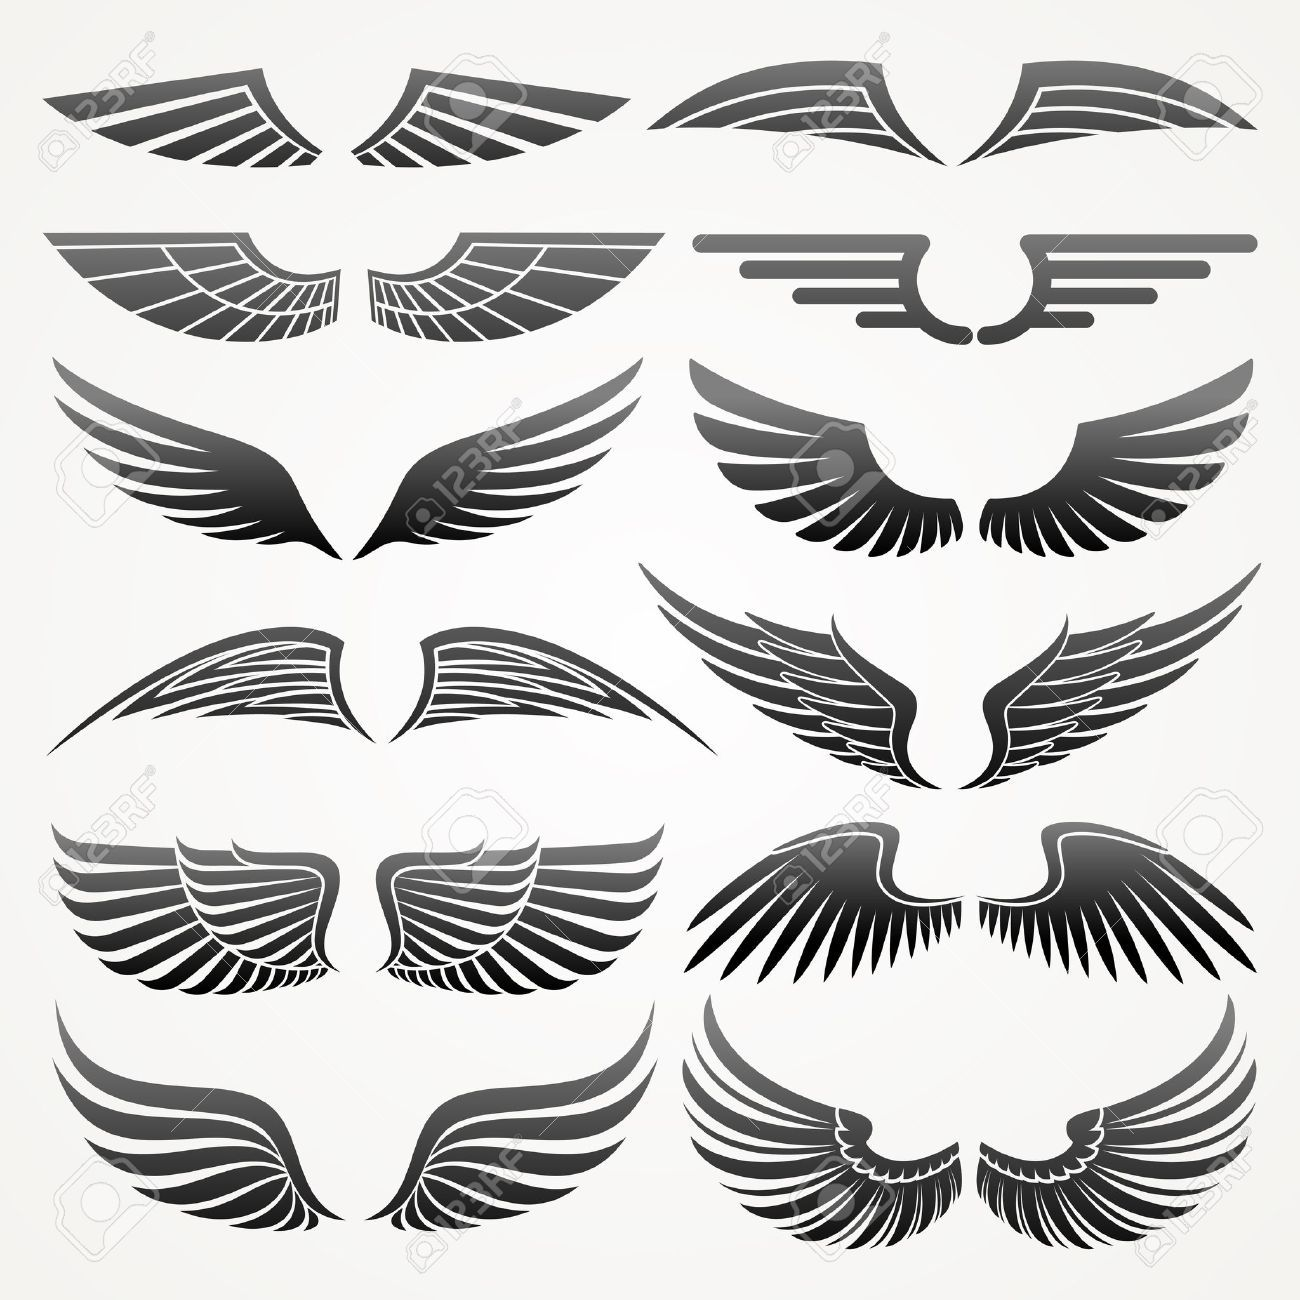 bird wings wings elements for design vector illustration wings pinterest wing wing. Black Bedroom Furniture Sets. Home Design Ideas